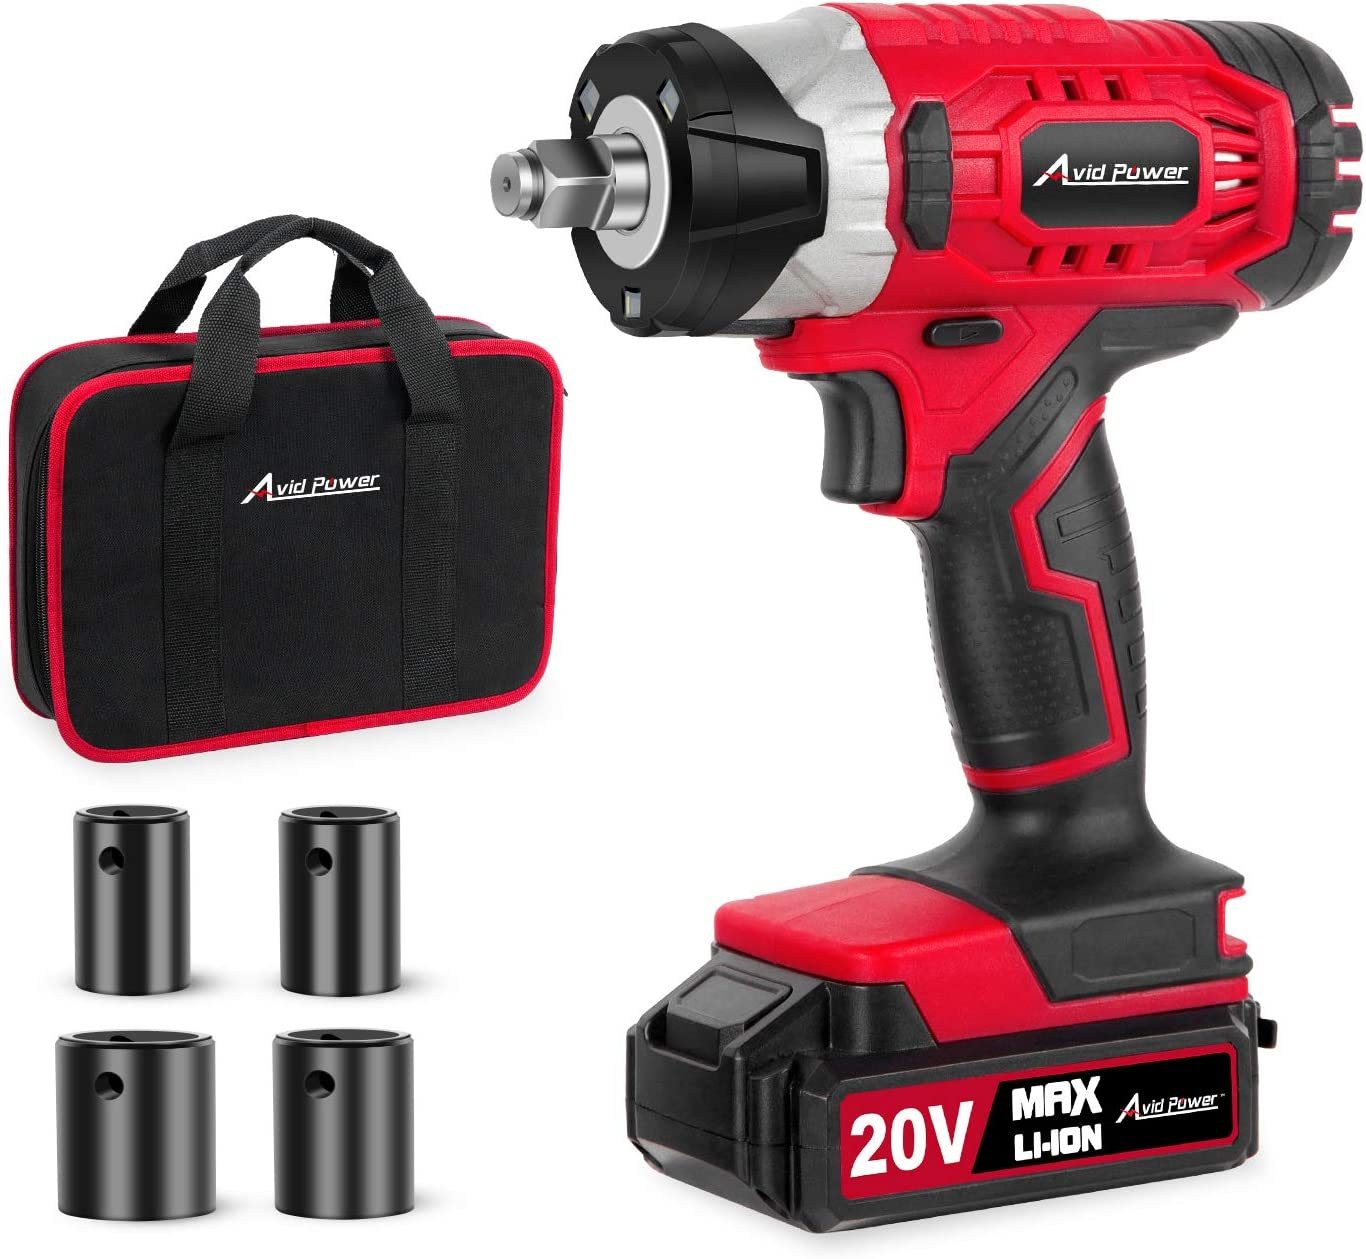 Avid Power MAX Cordless Impact Wrench